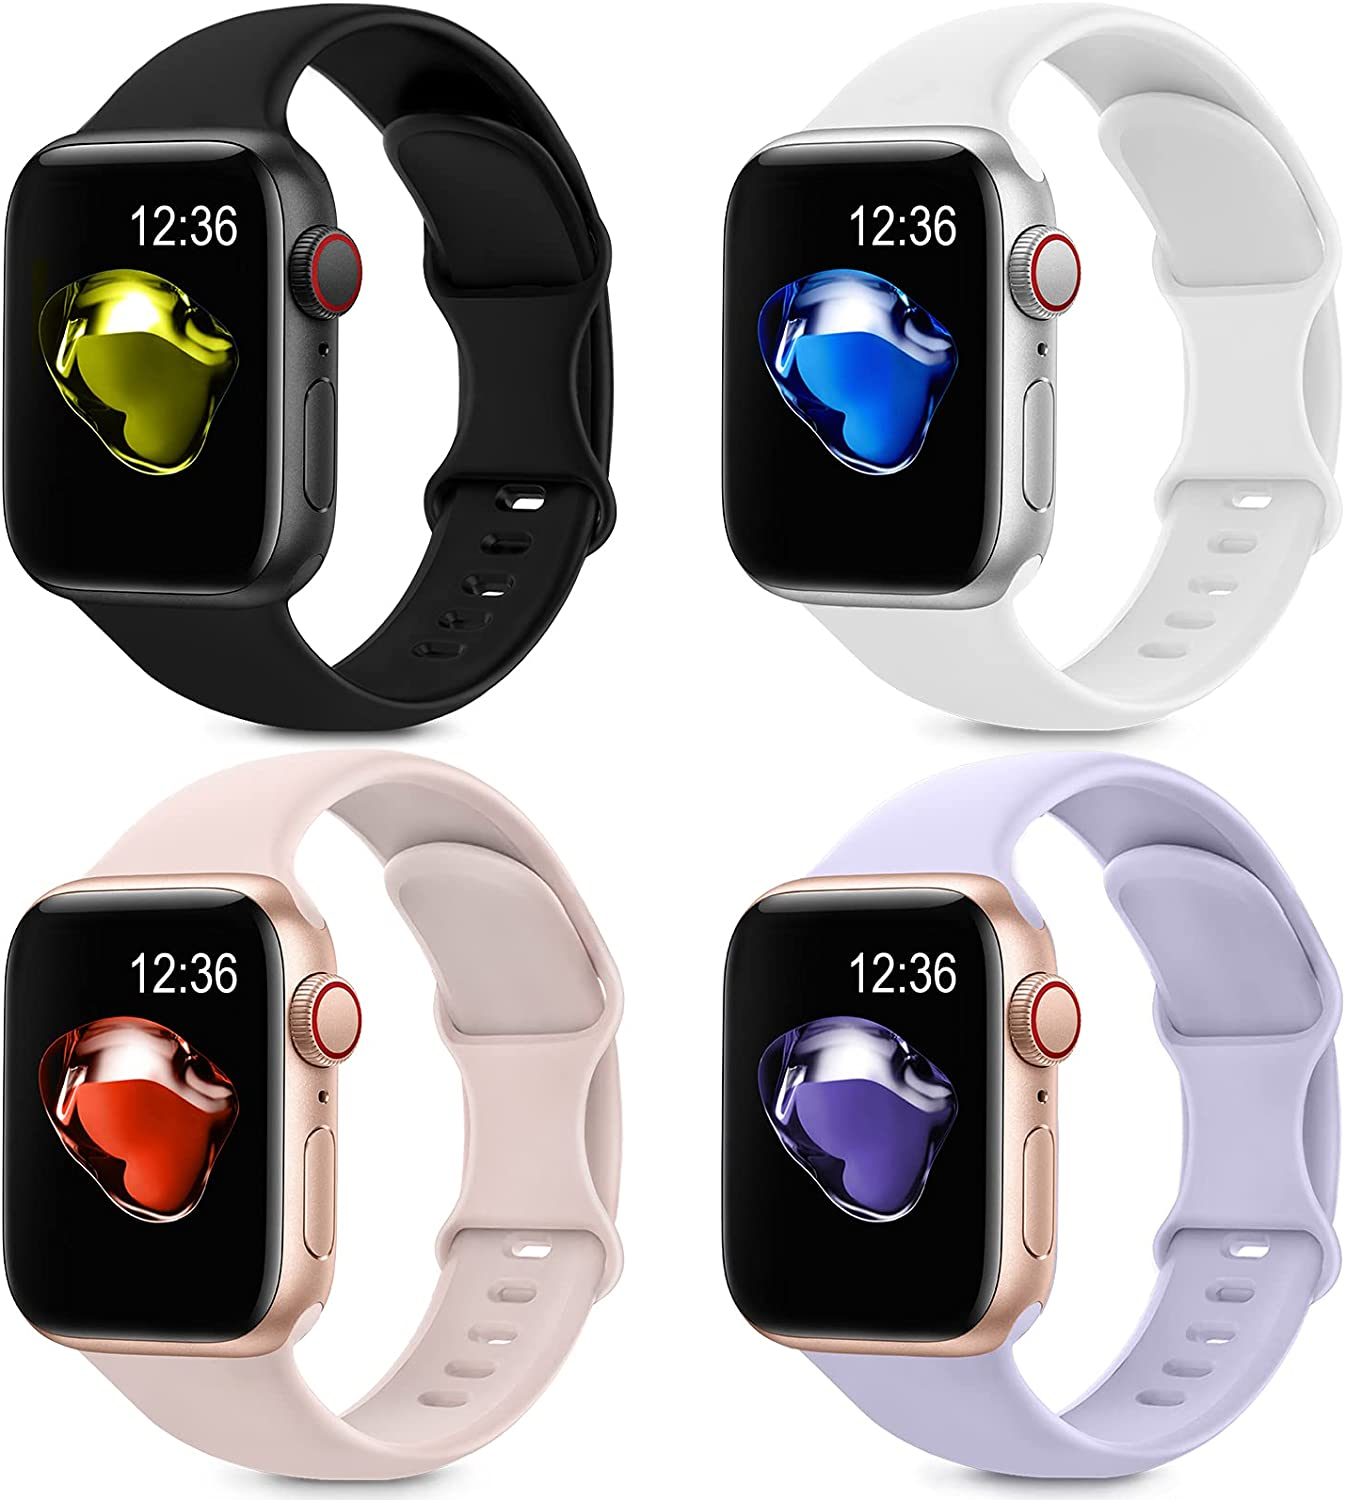 4 Pack Sport Silicone Bands Compatible with Apple Watch Bands 38mm 40mm Women Men, Soft Replacement Strap Band Compatible for iwatch Series 6 SE 5 4 3 2 1(38MM/40MM,Black+White+Pink+Purple)